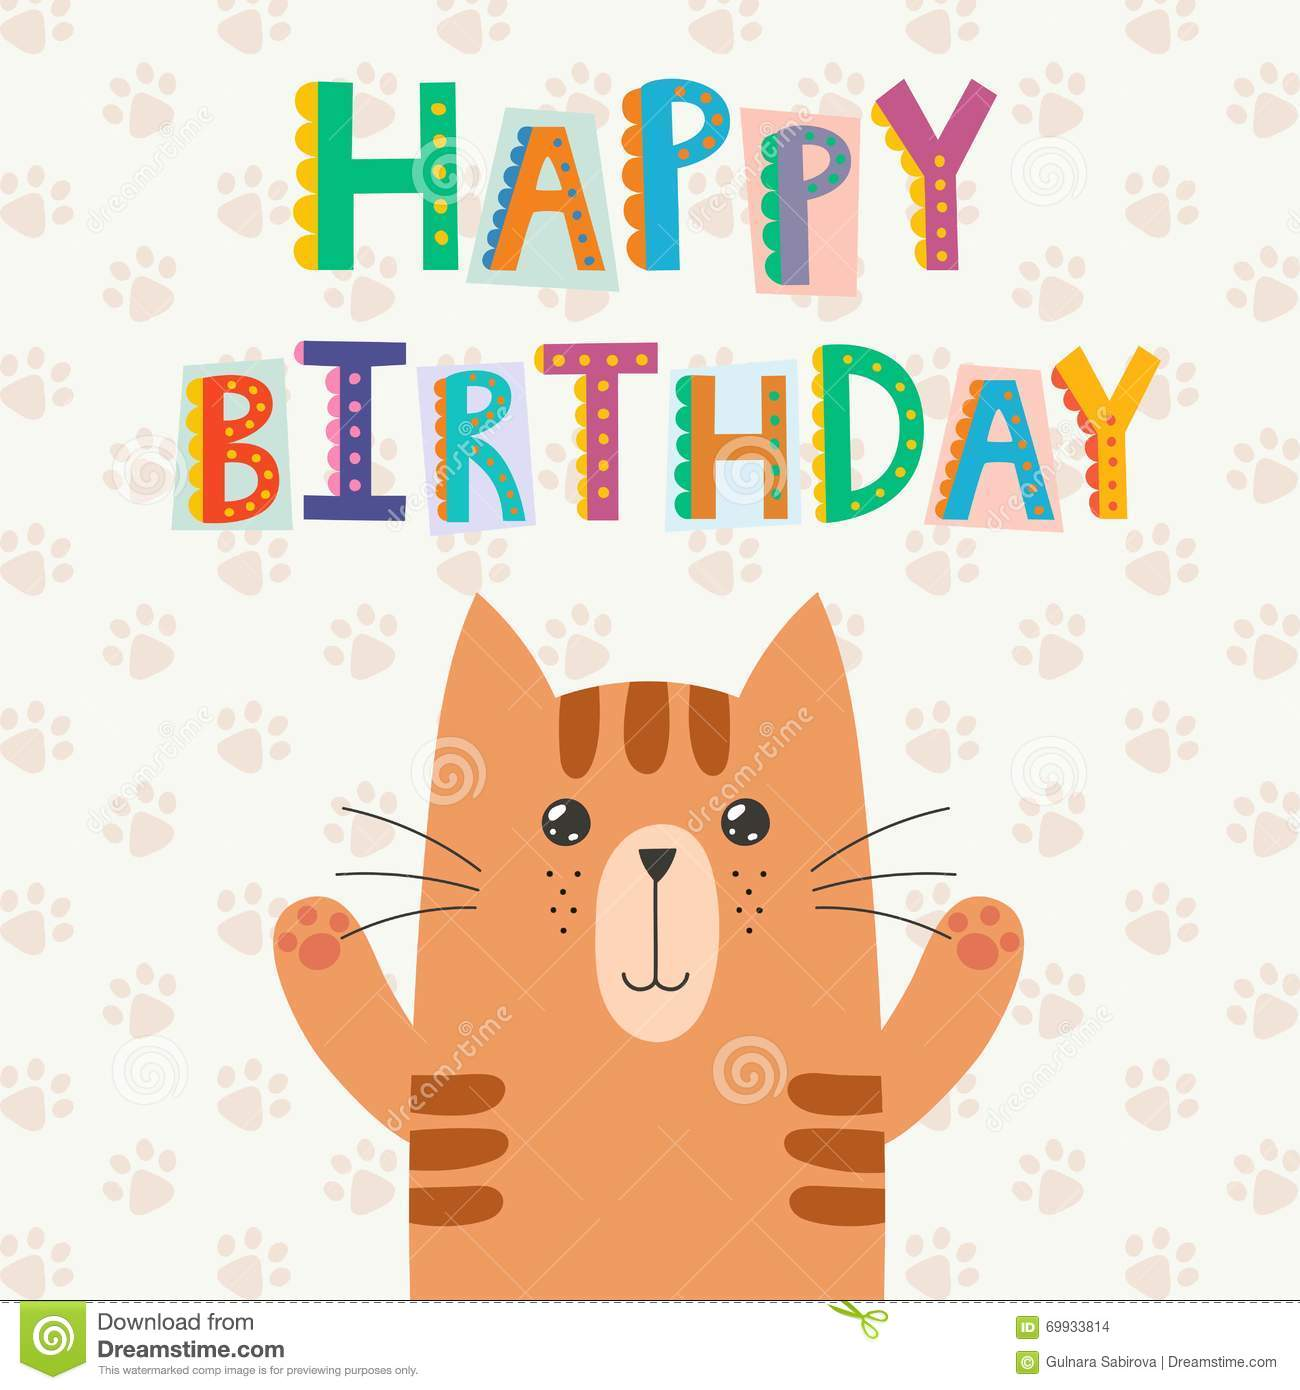 Happy Birthday Greeting Card With A Cute Cat And Funny Text – Funny Happy Birthday Greeting Cards